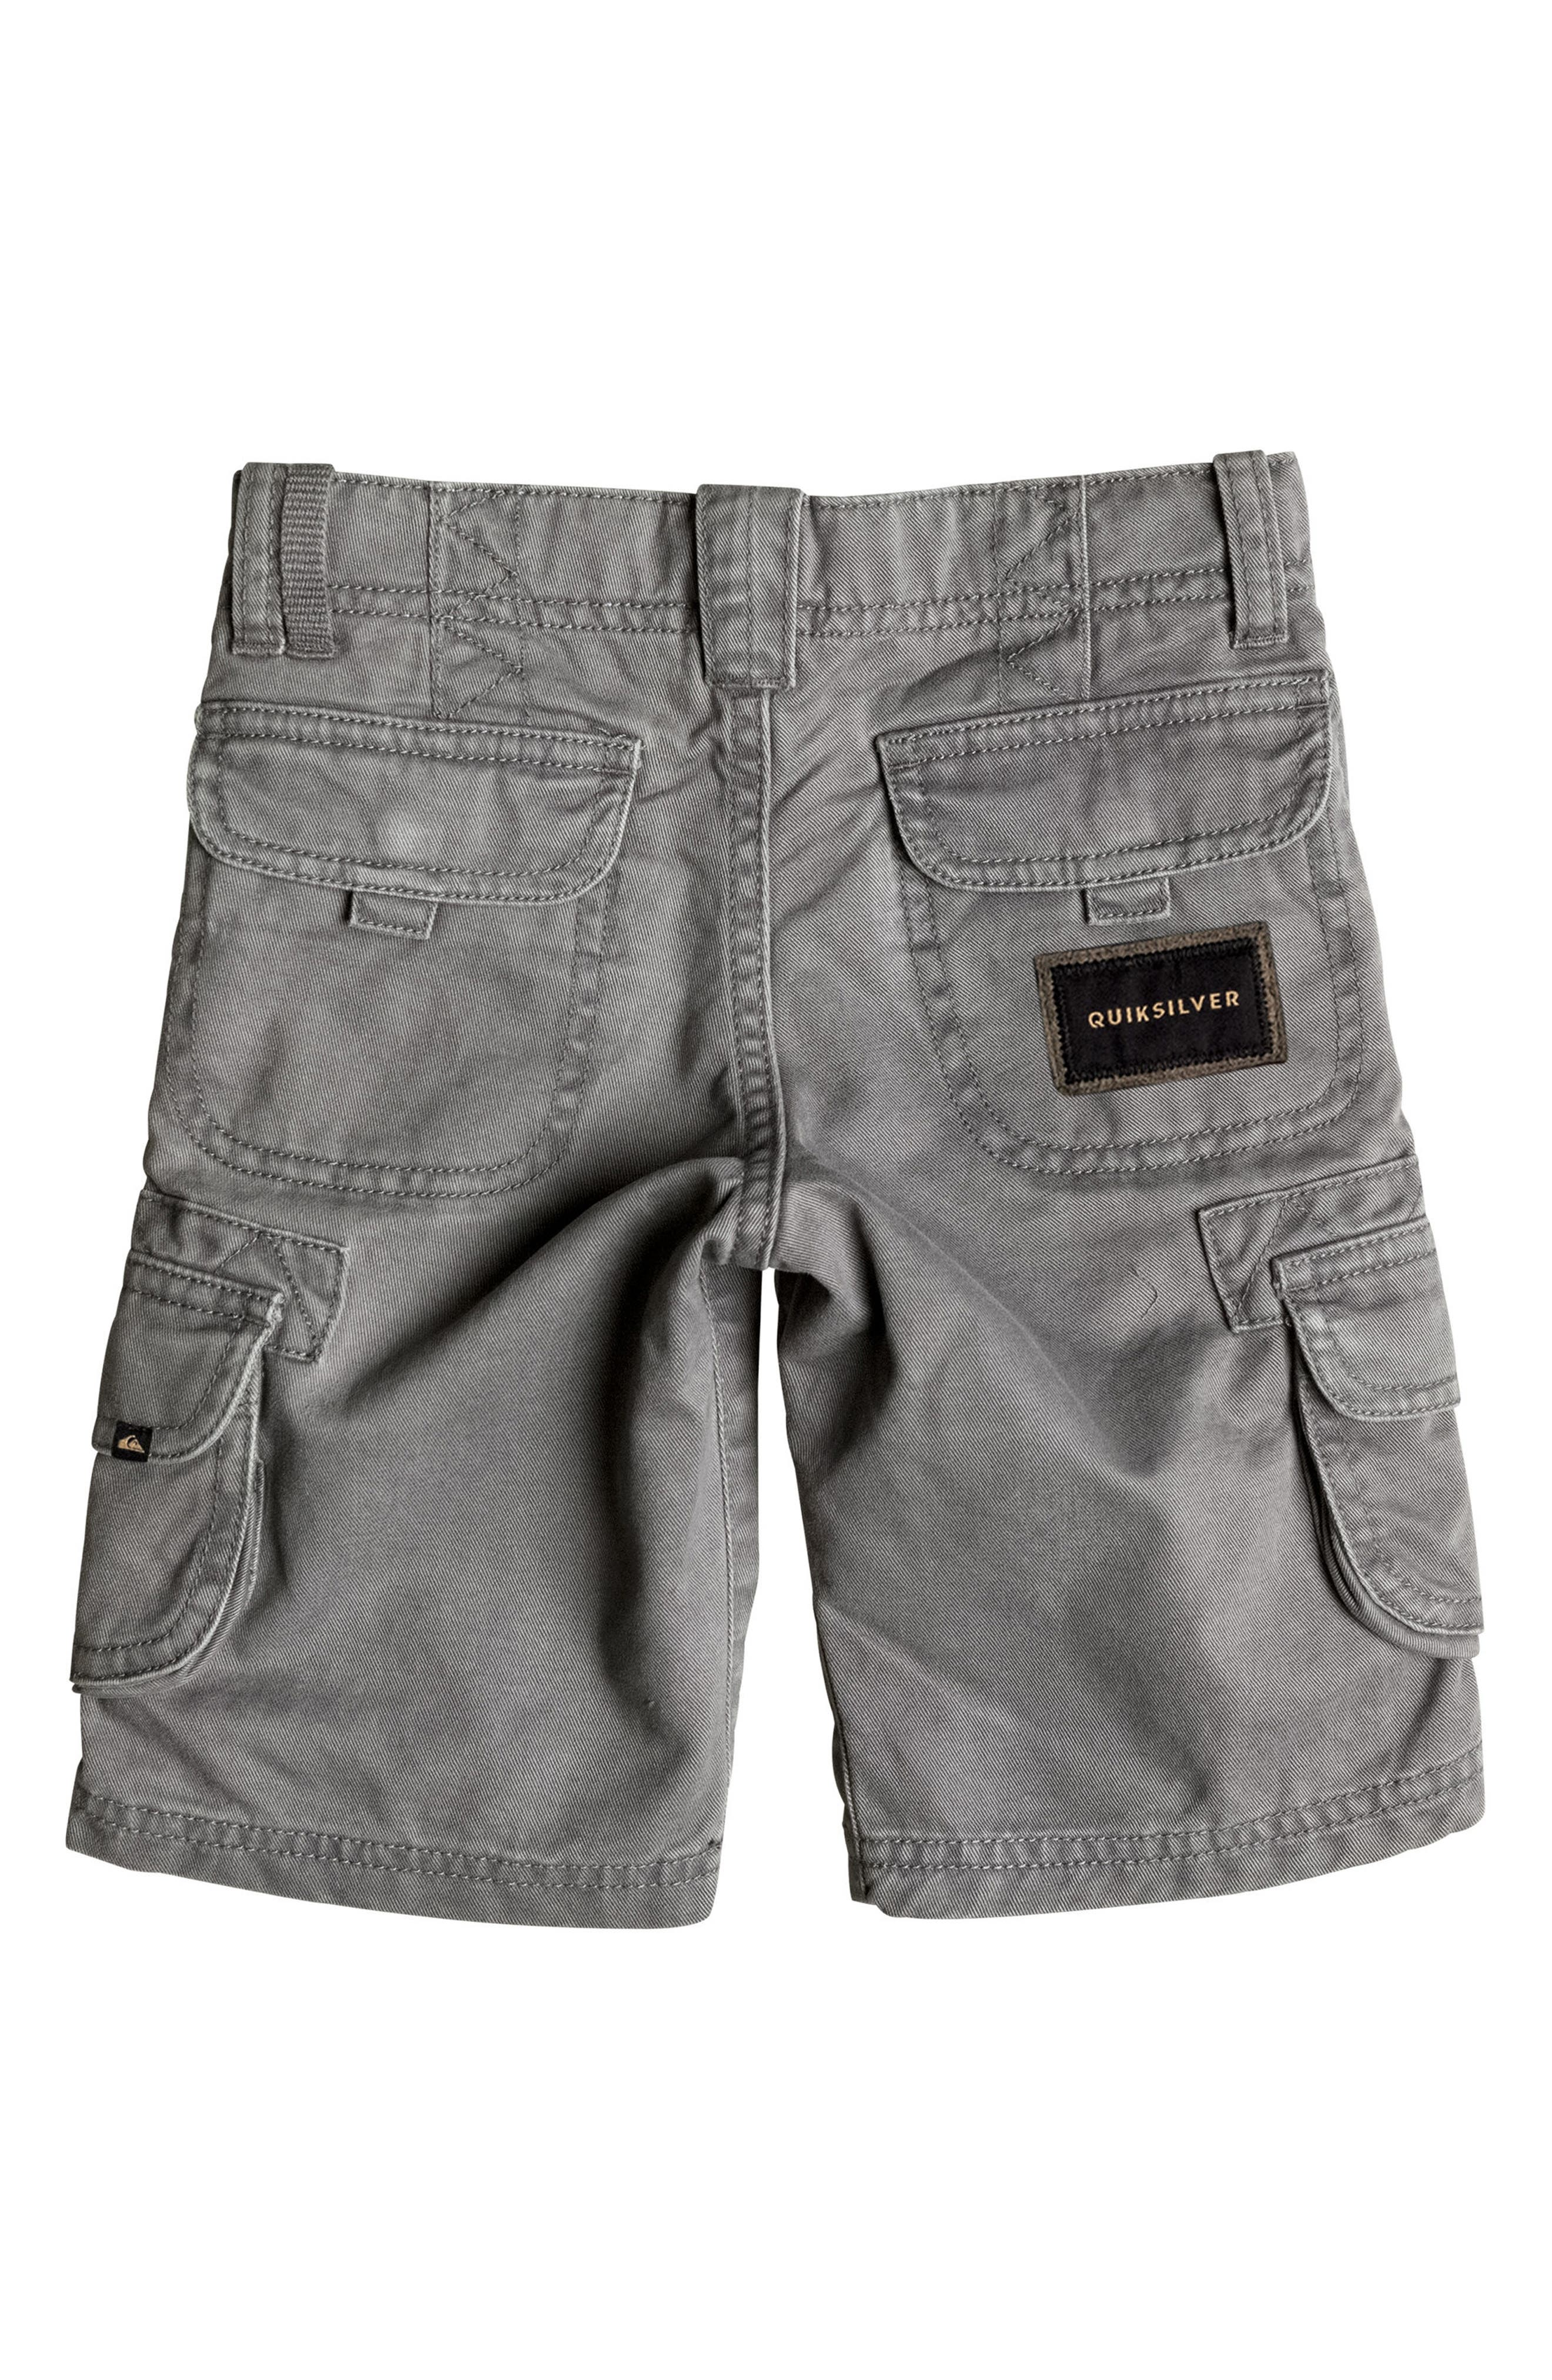 Everyday Deluxe Cargo Shorts,                             Alternate thumbnail 2, color,                             020